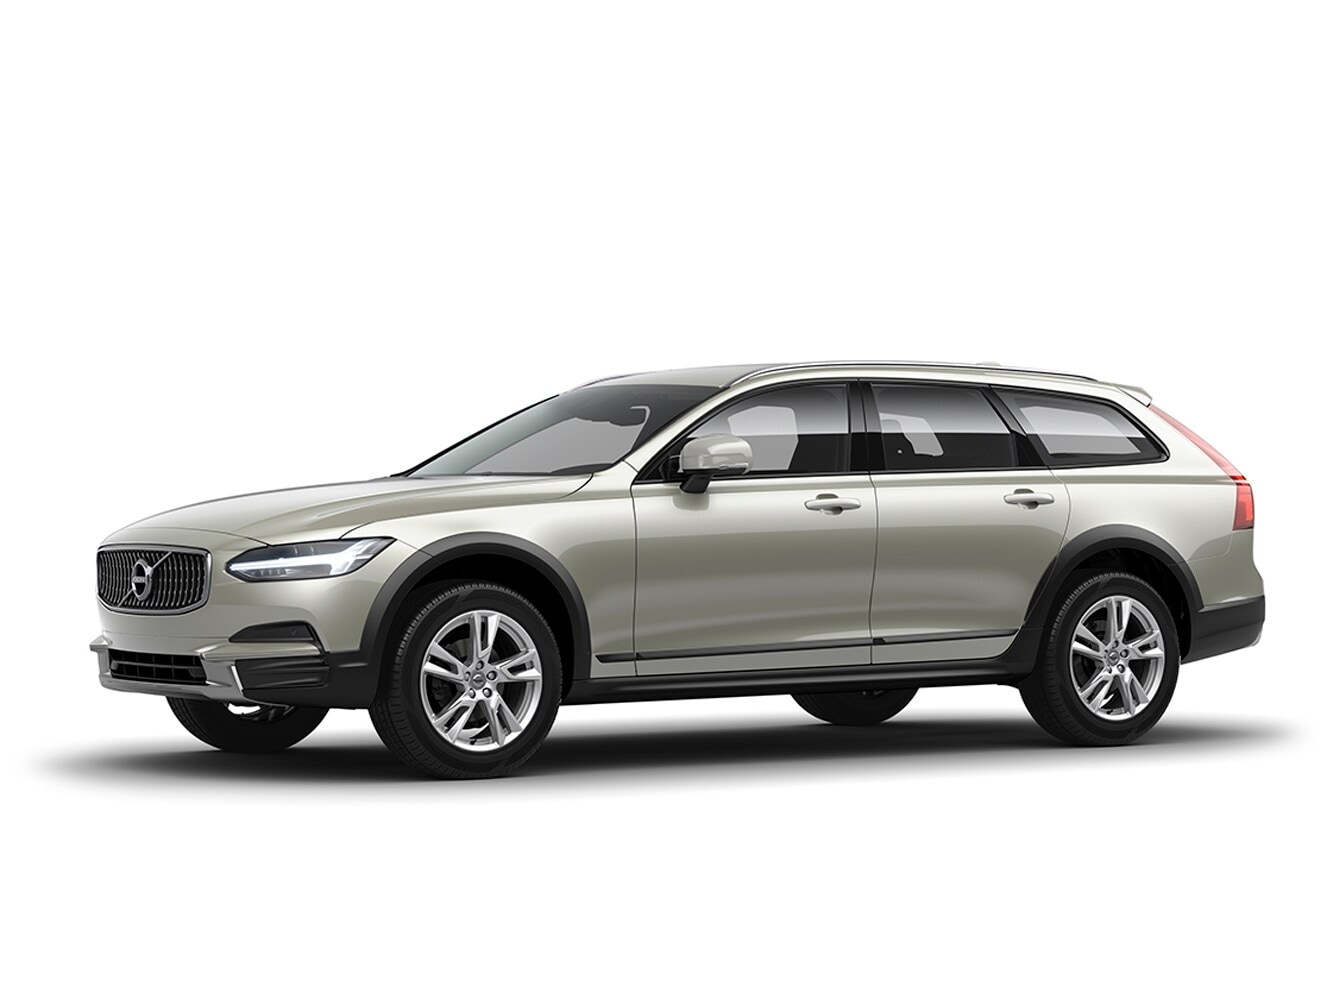 Volvo V90 u Cross Country paketu opreme